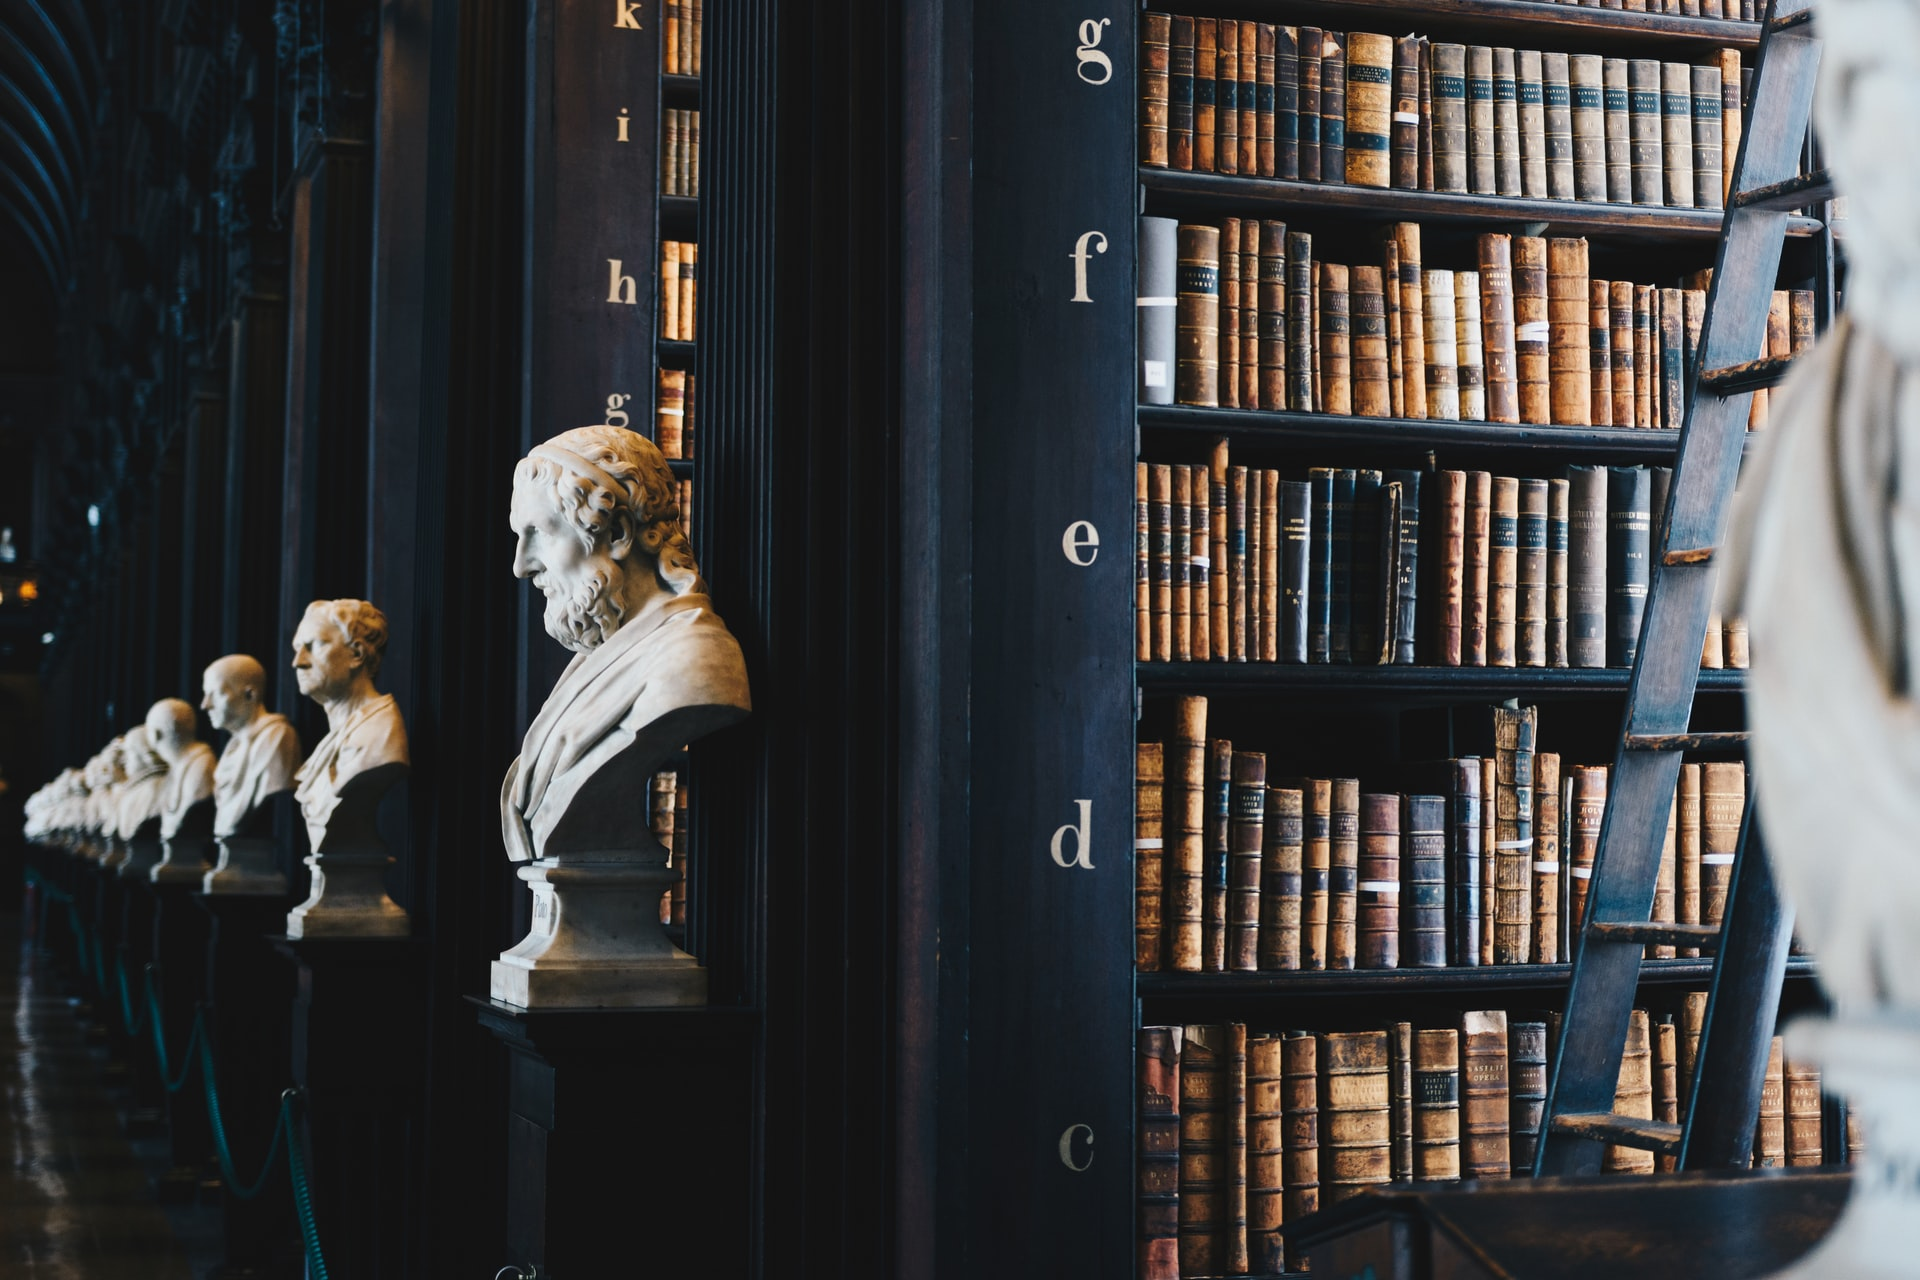 Library containing law books and busts